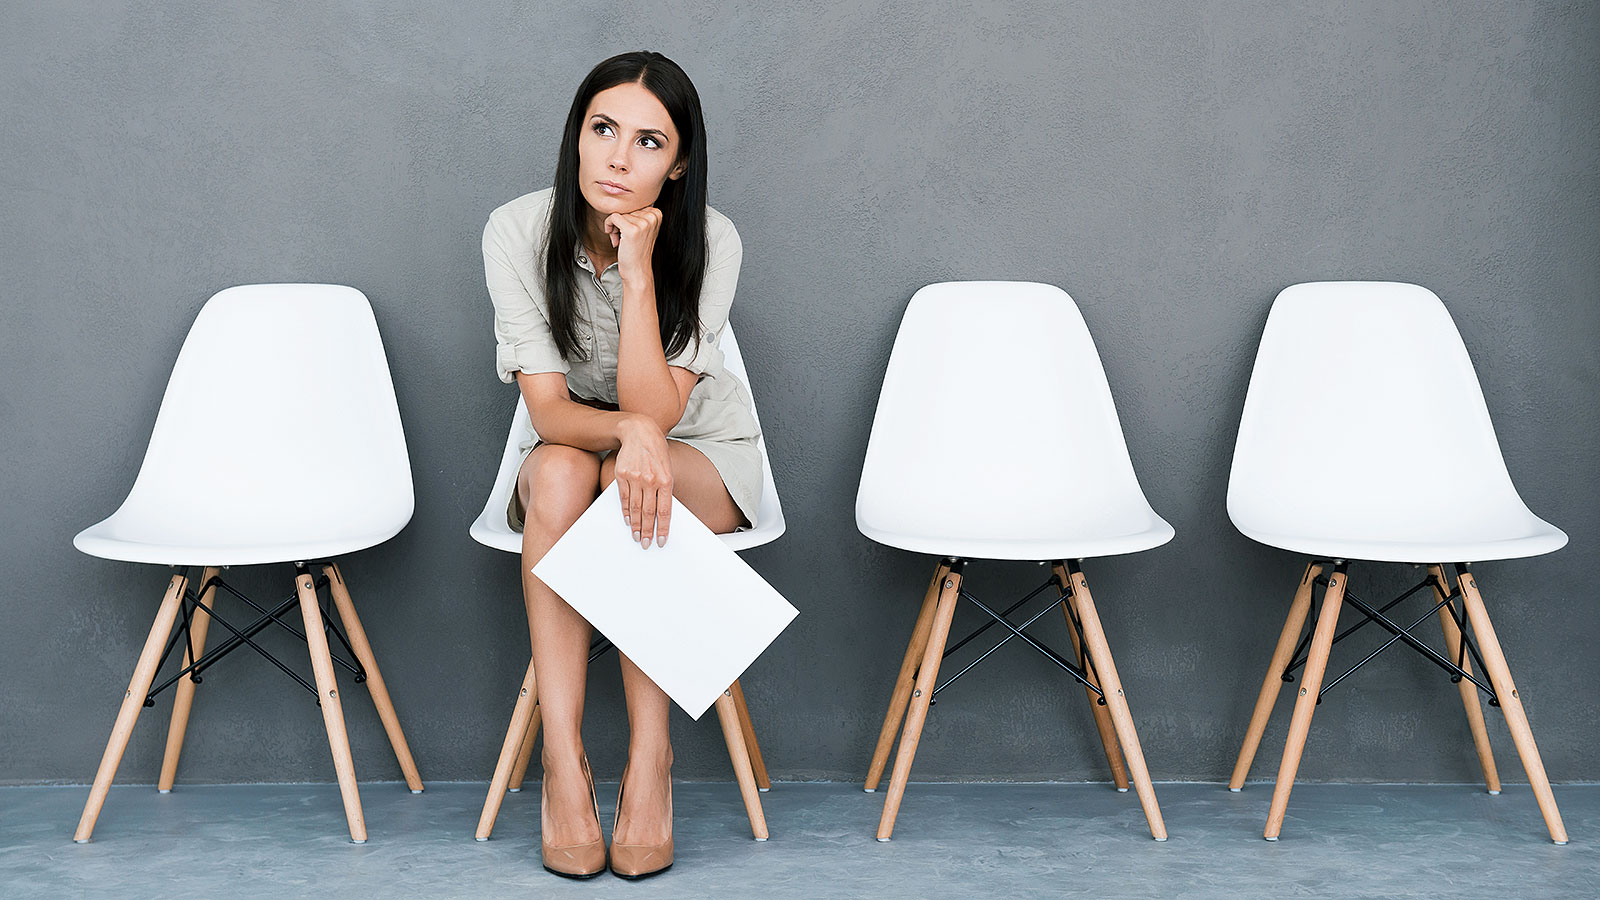 6 tips from HR pros on what candidates can do to stand out in an interview